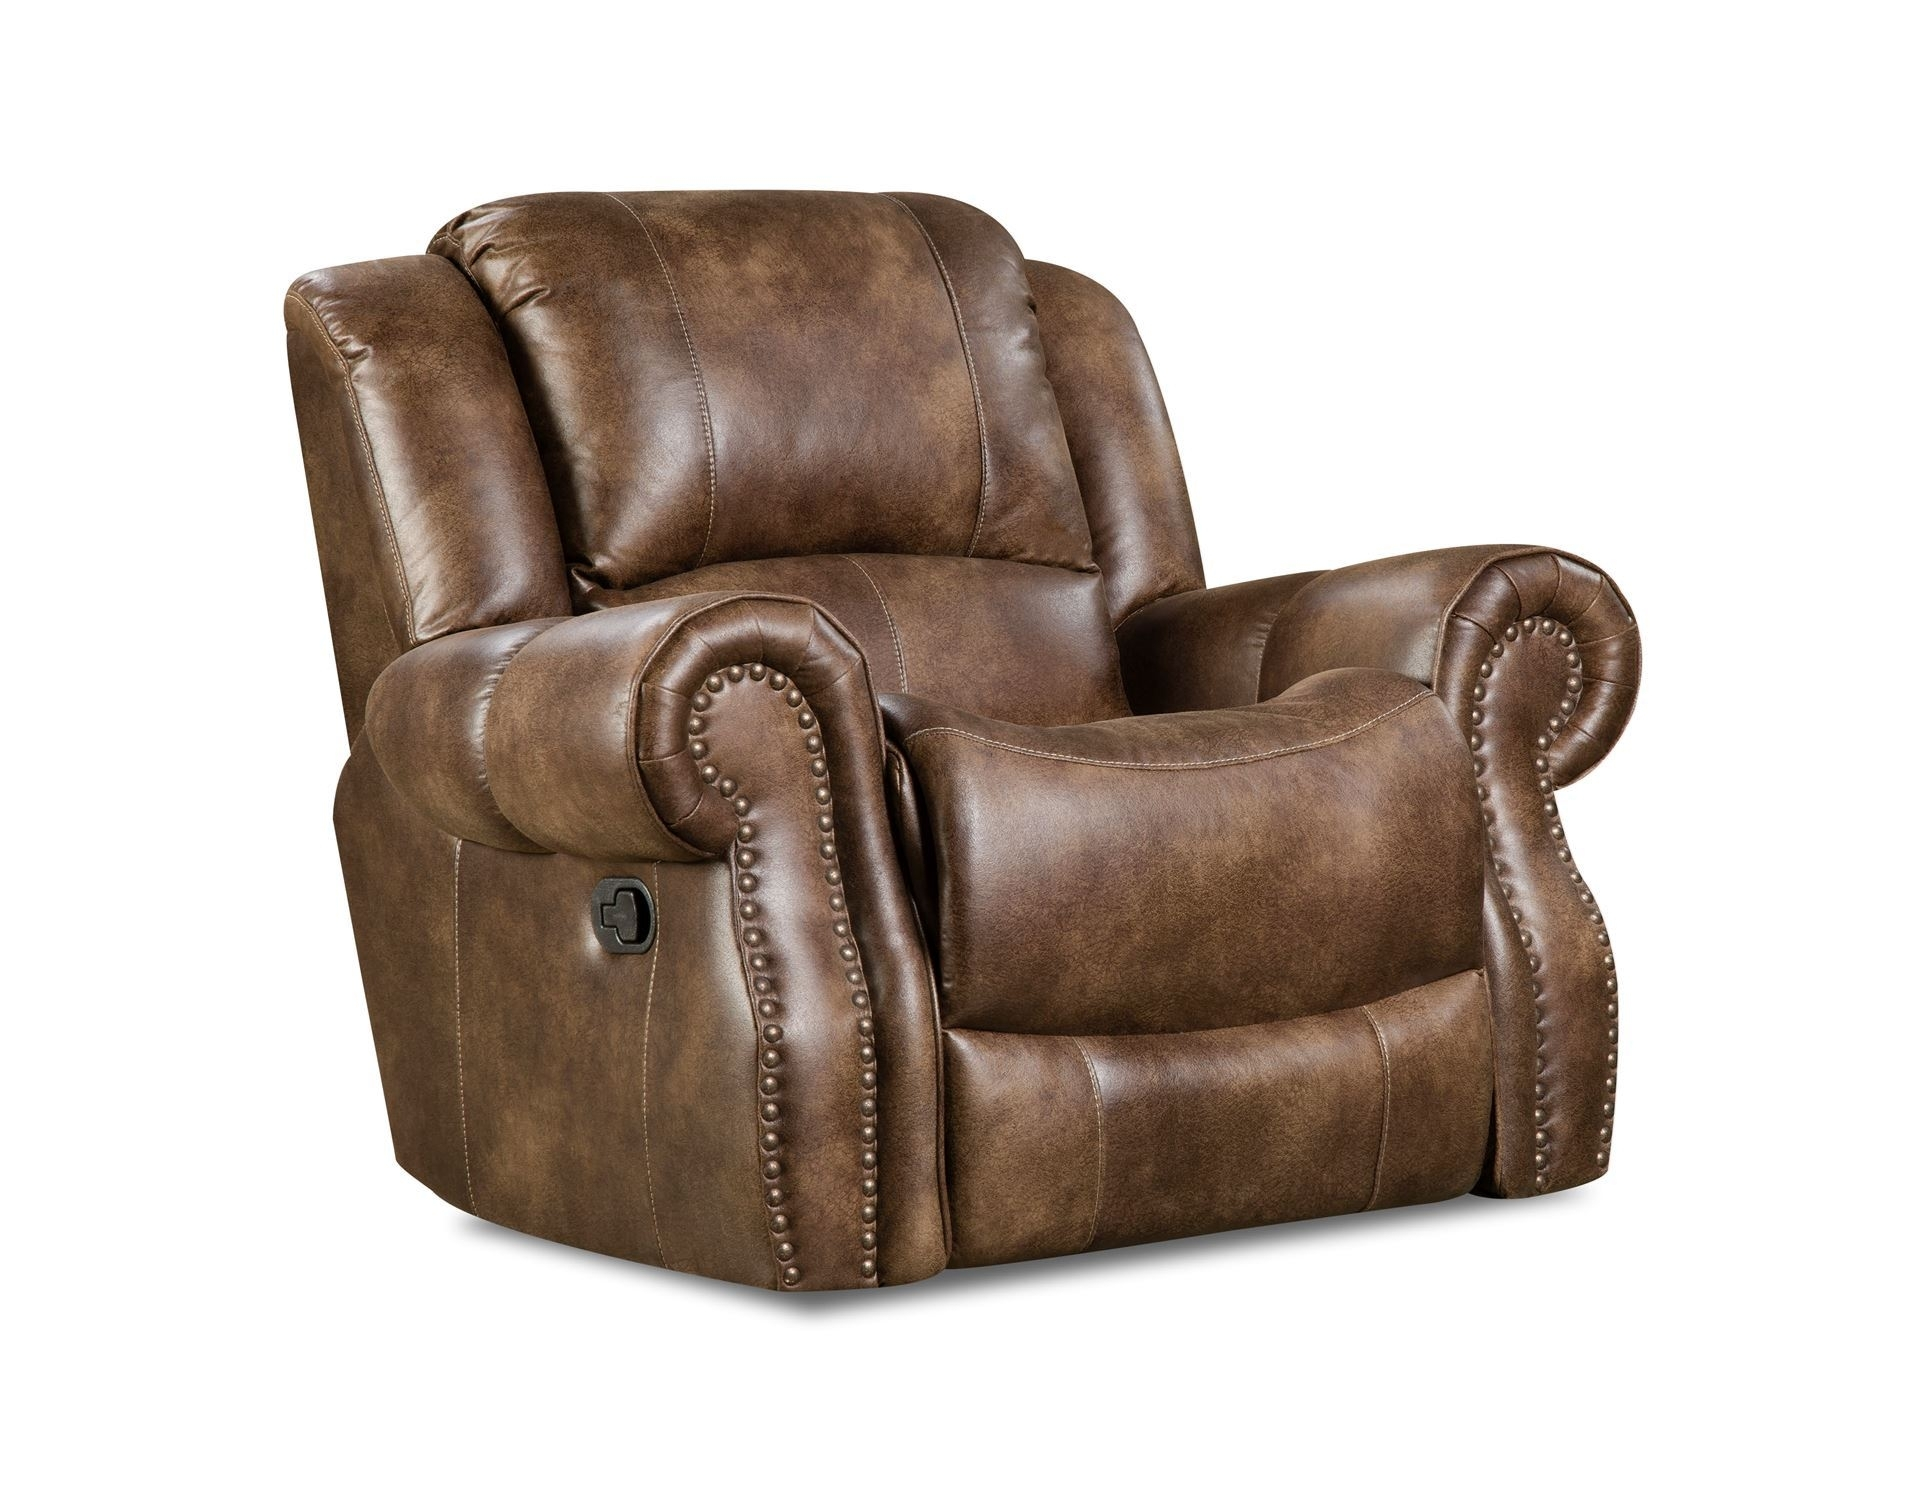 Waylon - Mocha Rocker Recliner | Kimbrells Furniture with regard to Waylon 3 Piece Power Reclining Sectionals (Image 22 of 30)